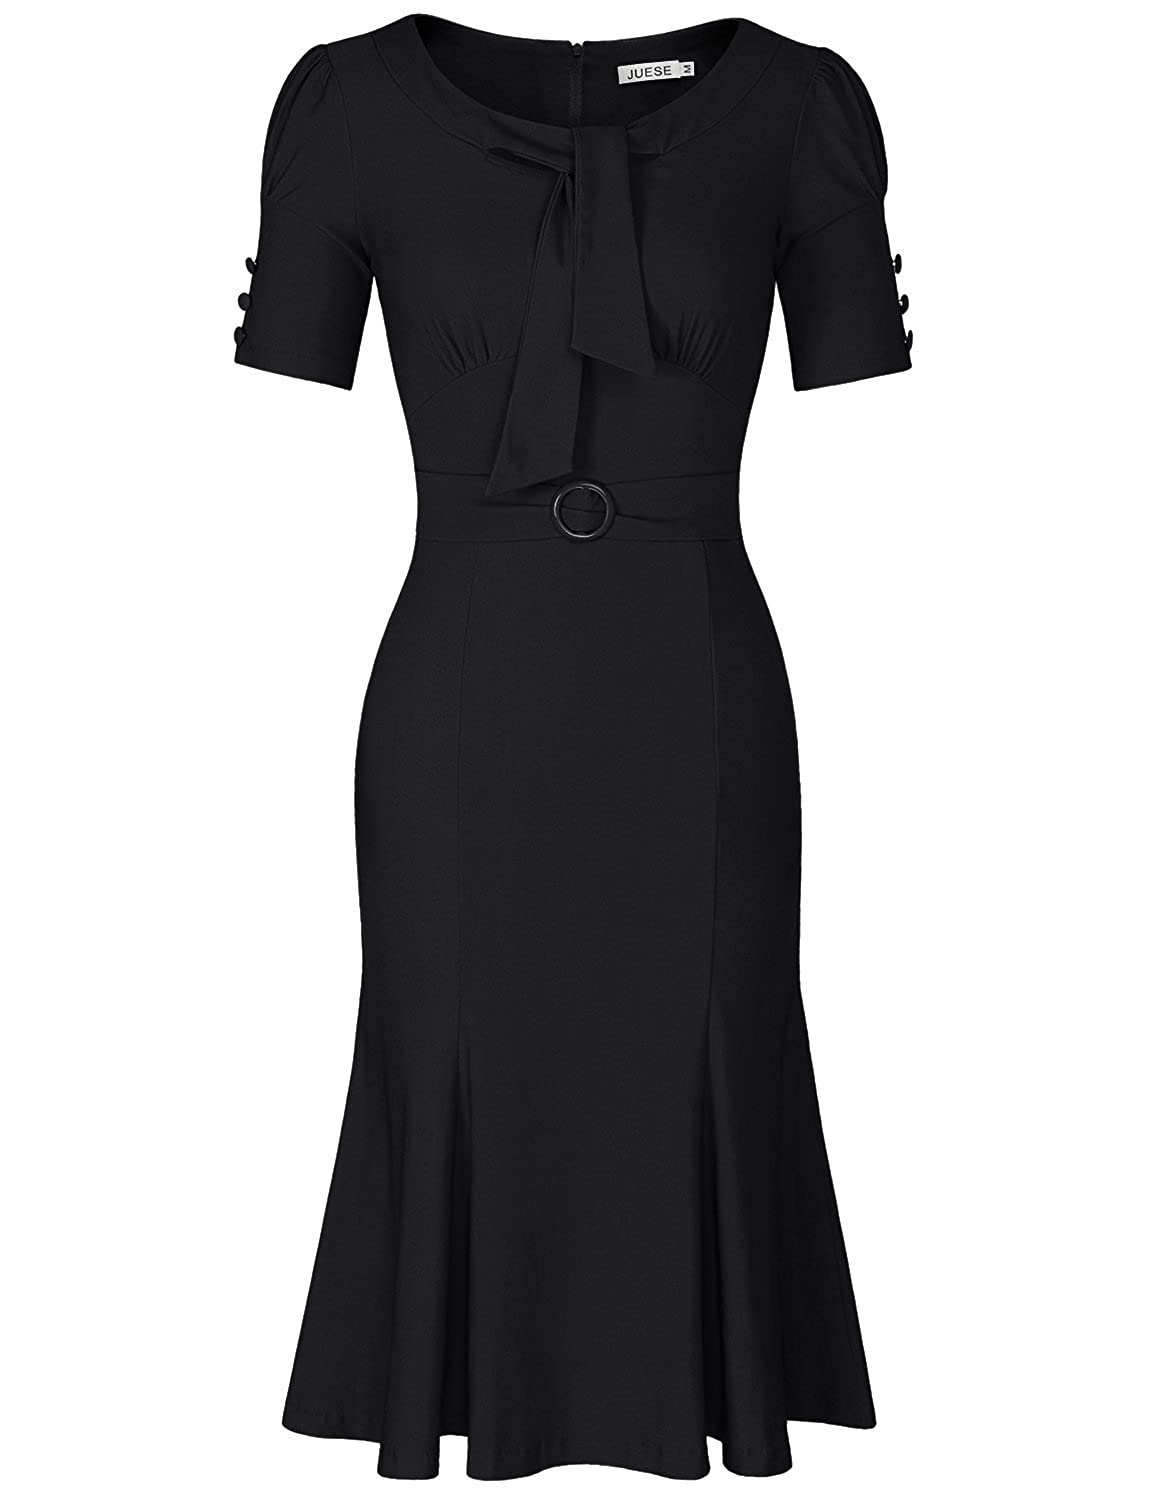 1940s Style Dresses and Clothing Formal or Casual Party Pencil Dress $32.99 AT vintagedancer.com